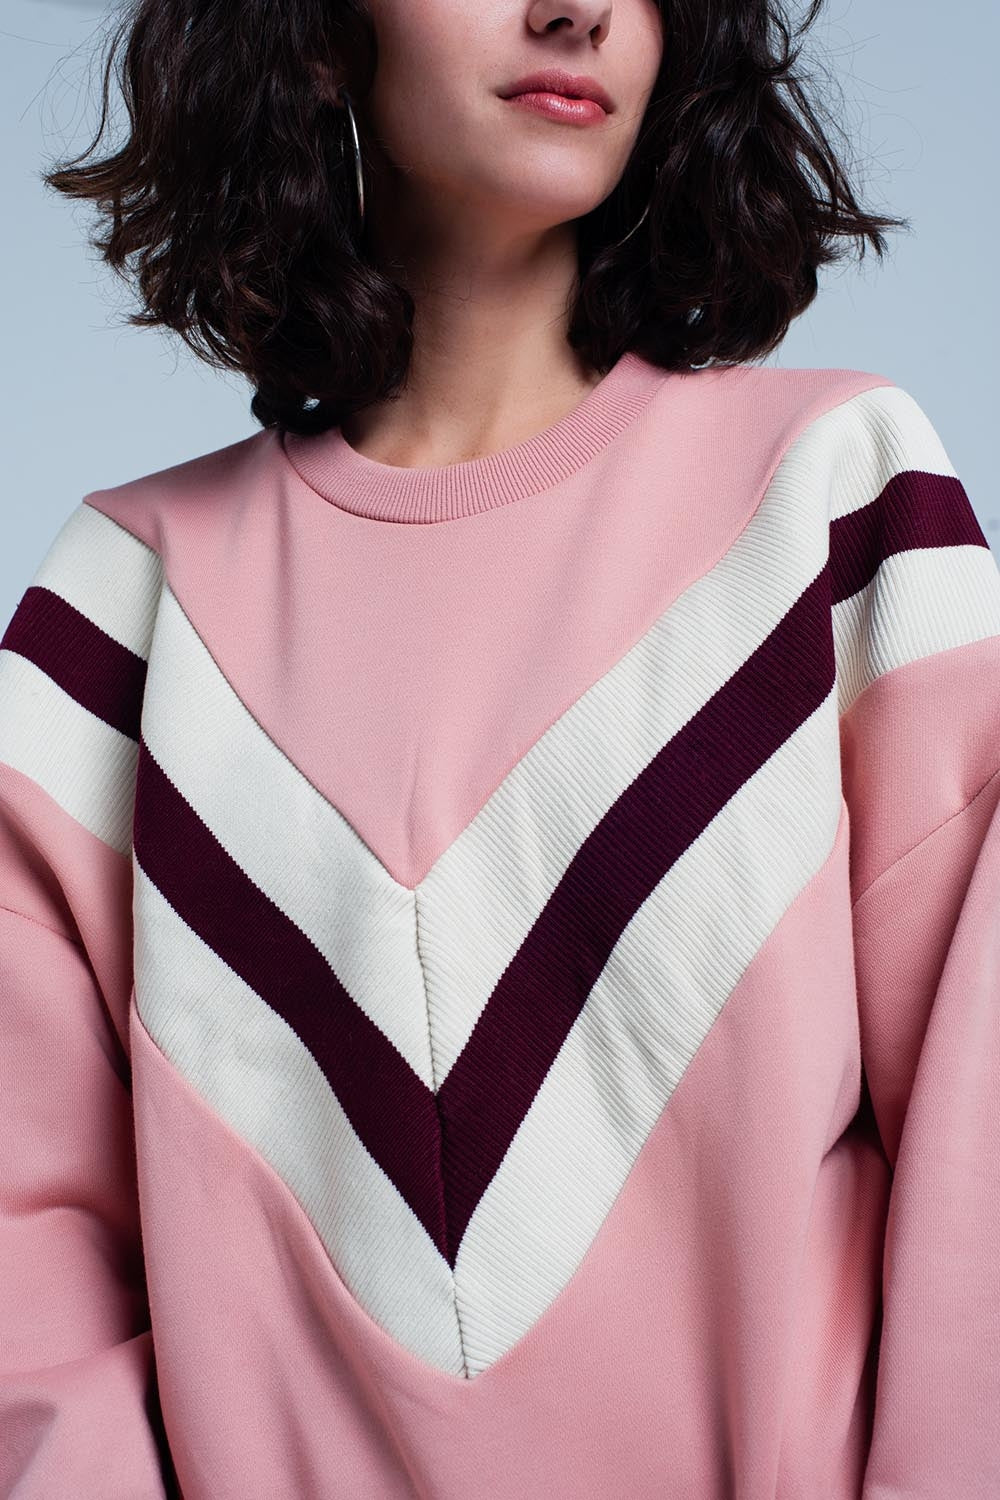 Pink Sweatshirt With Striped V-Pattern-Women - Apparel - Sweaters - Pull Over-Product Details Pink sweatshirt of very confortable and strong polyester and cotton composition with a round crew neck and long sleeves. The front of the sweater is decorated with a cream and maroon striped V pattern.-Keyomi-Sook